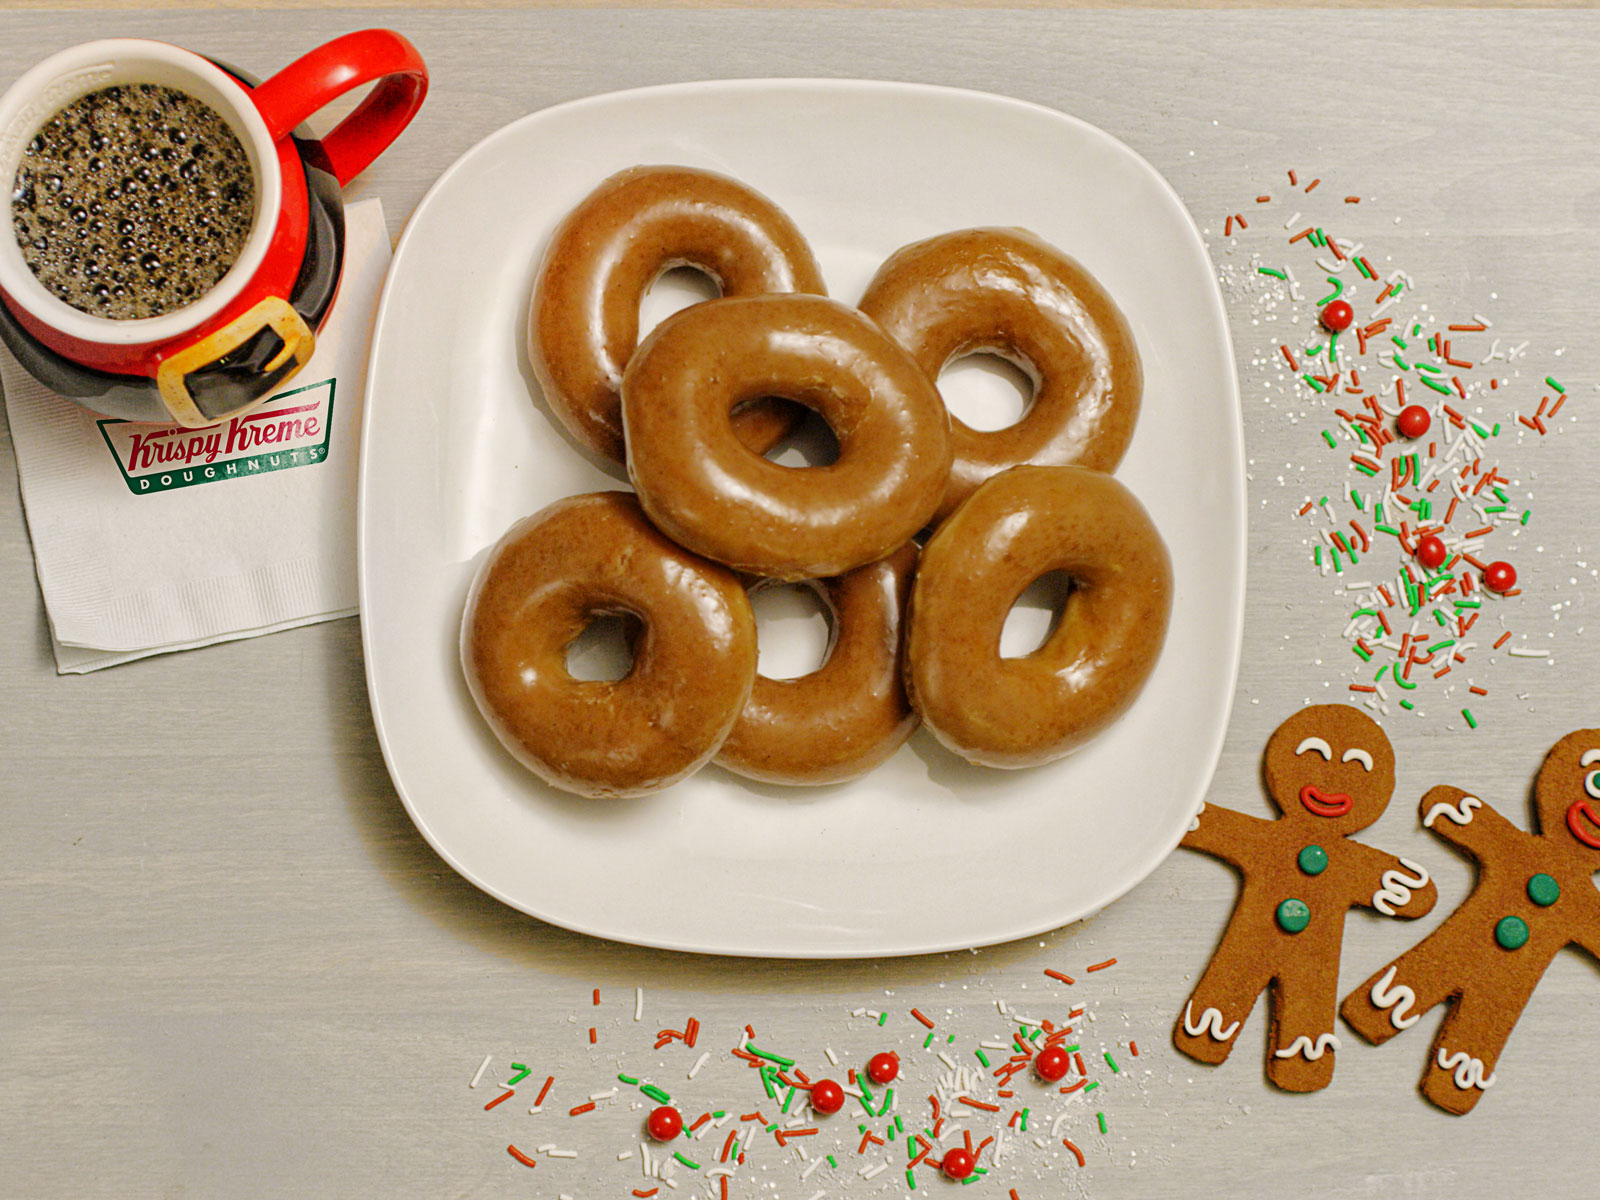 Krispy Kreme Is Making a Gingerbread Glazed Doughnut for One Day Only